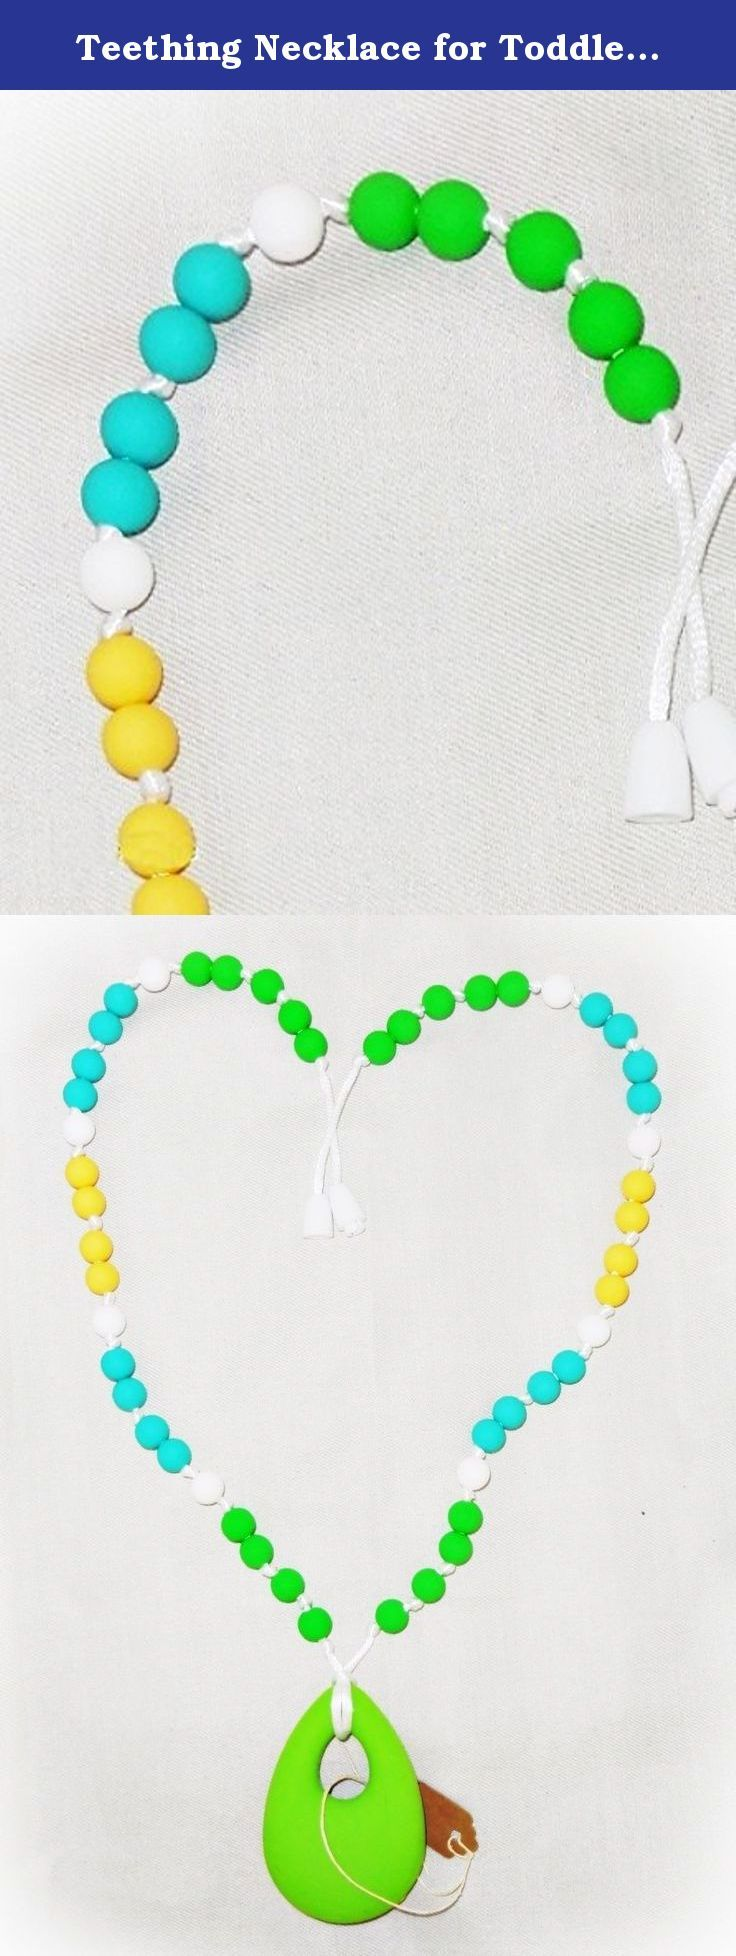 Teething Necklace for Toddler, Mommy Teether Aid, Teething Baby Relief, Electric Lime Teething Necklace. Food-safe silicone beads have been knotted in attractive collections to sooth Baby's teeth and coordinate with Mommy's wardrobe! The best thing since sliced bread, these teething necklaces are the answer to your (or, more specifically, your Precious Pumpkin's) teething woes! This Lime Time necklace features a little visual tang with green, aqua, and yellow. Pucker up and chomp!.